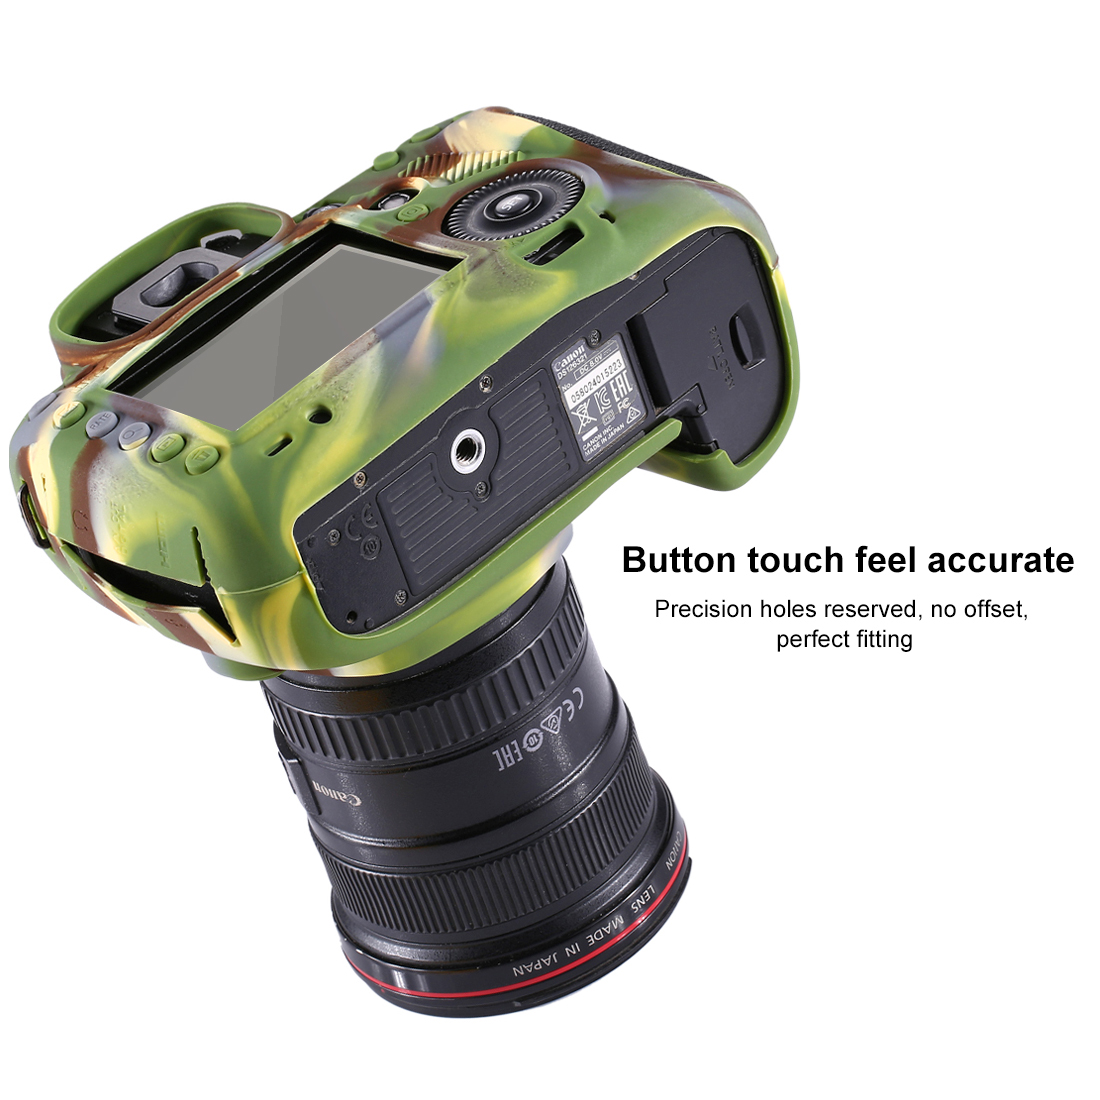 PULUZ PU7102 Soft Silicone Protective Case for Canon EOS 5D Mark III 5D3 DSLR Camera